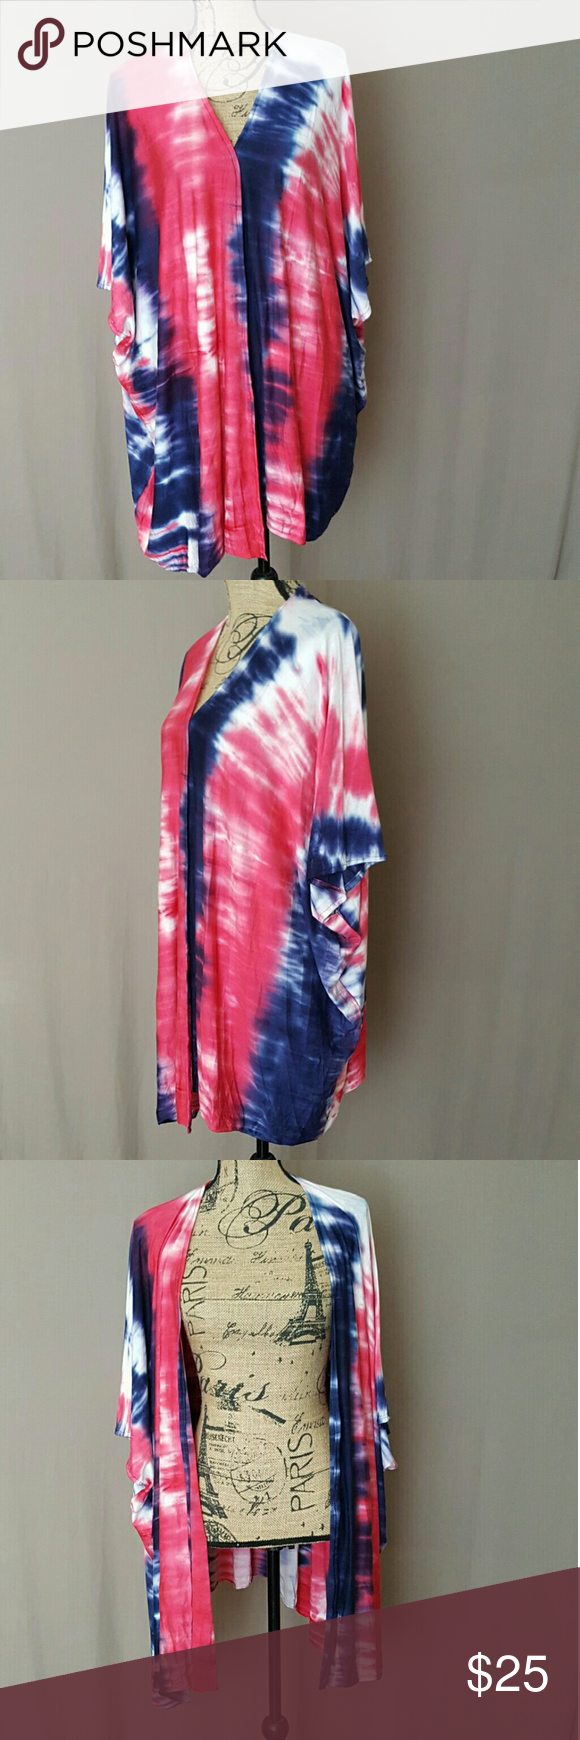 a7882da17 Red, White, Blue Tie Dye Kimono Cardigan Designed with light weight jersey  knit fabric